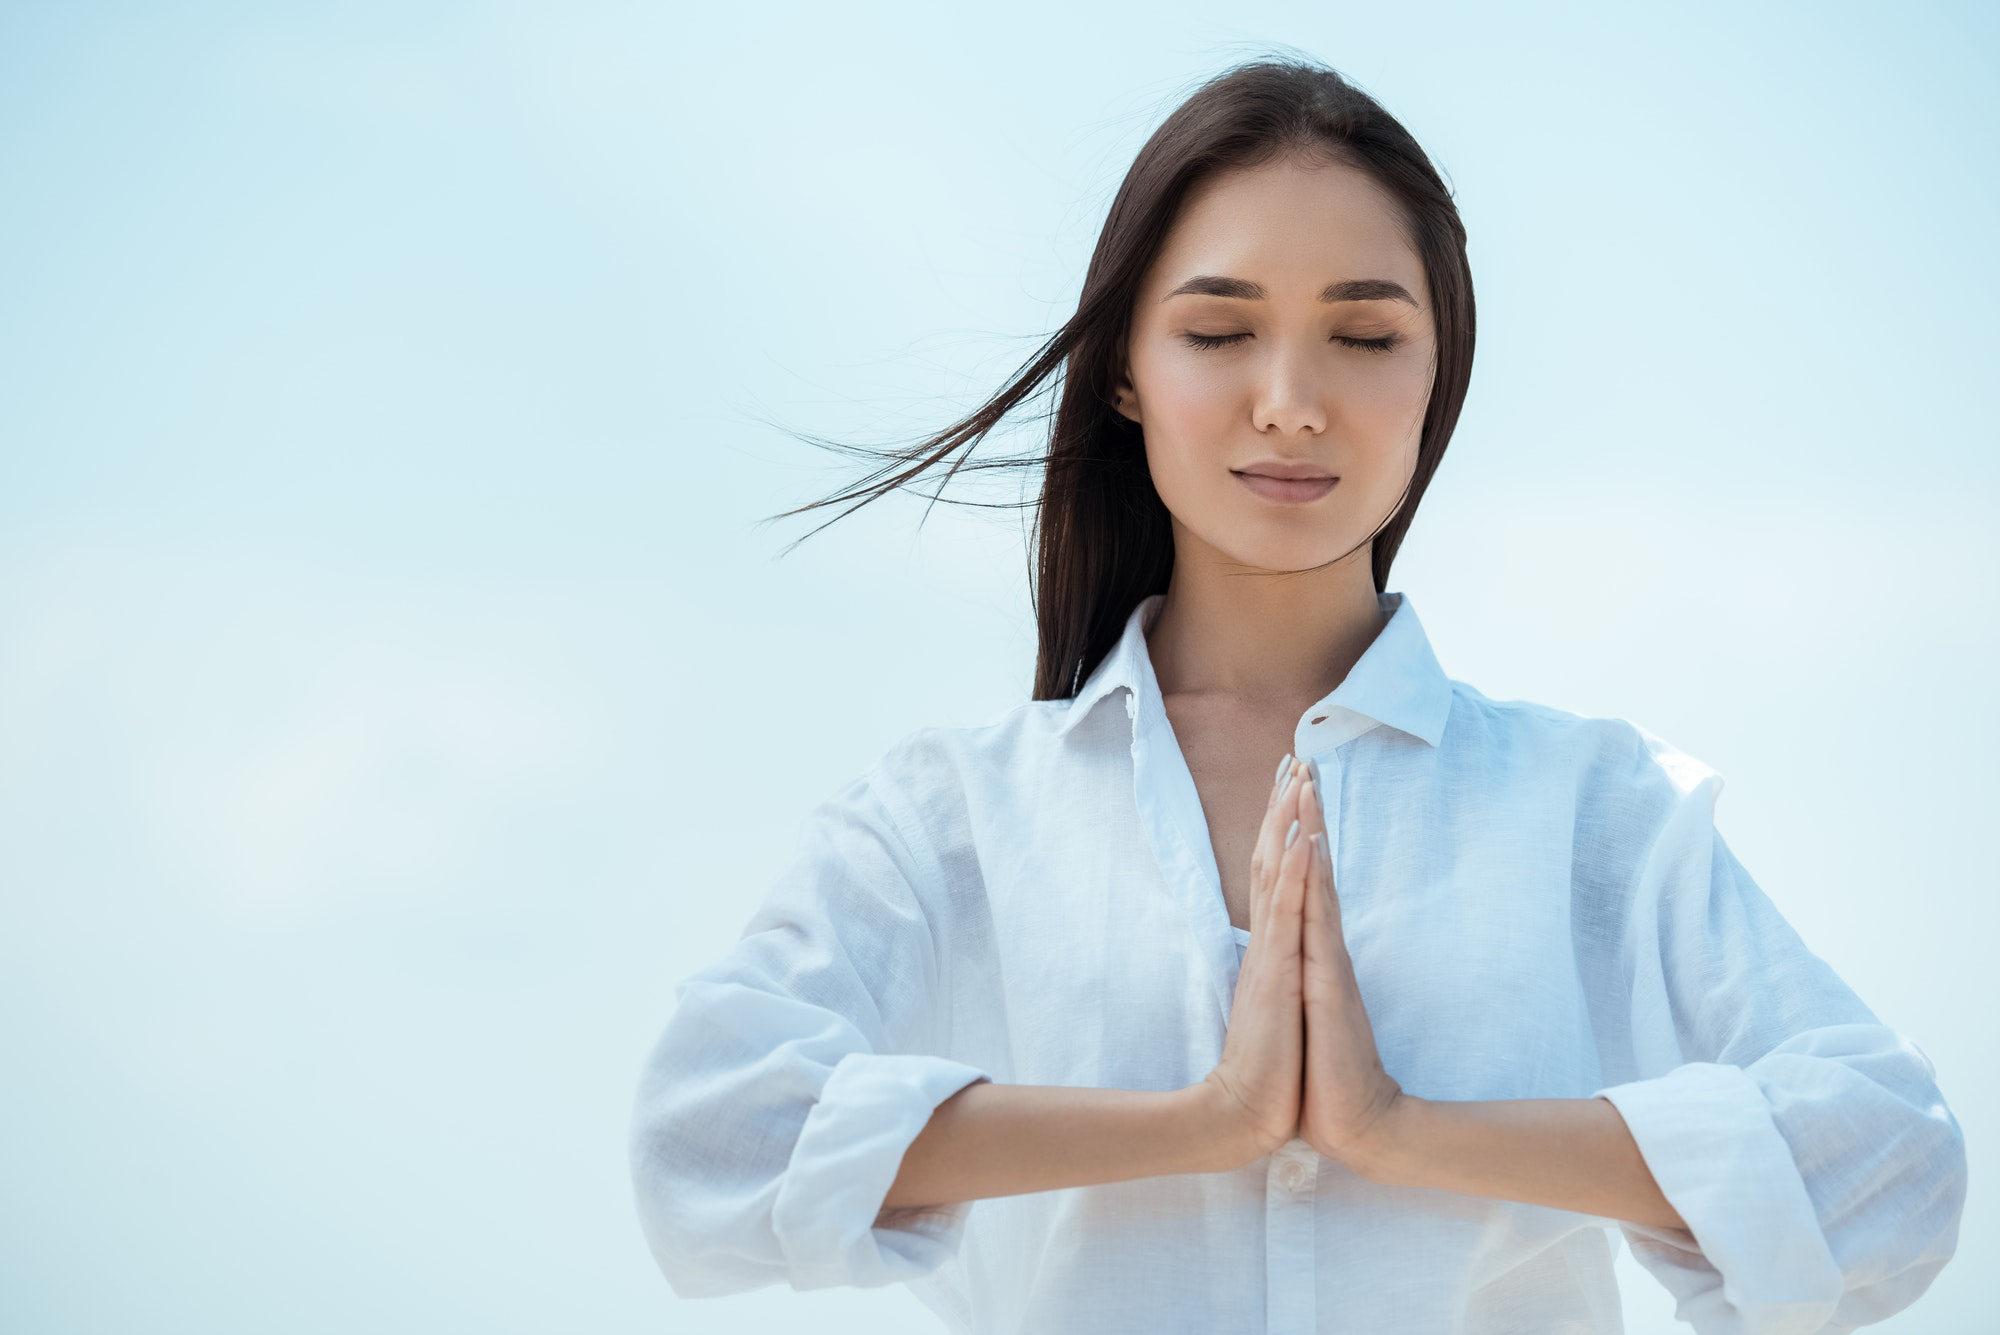 asian woman with closed eyes doing namaste mudra gesture against blue sky